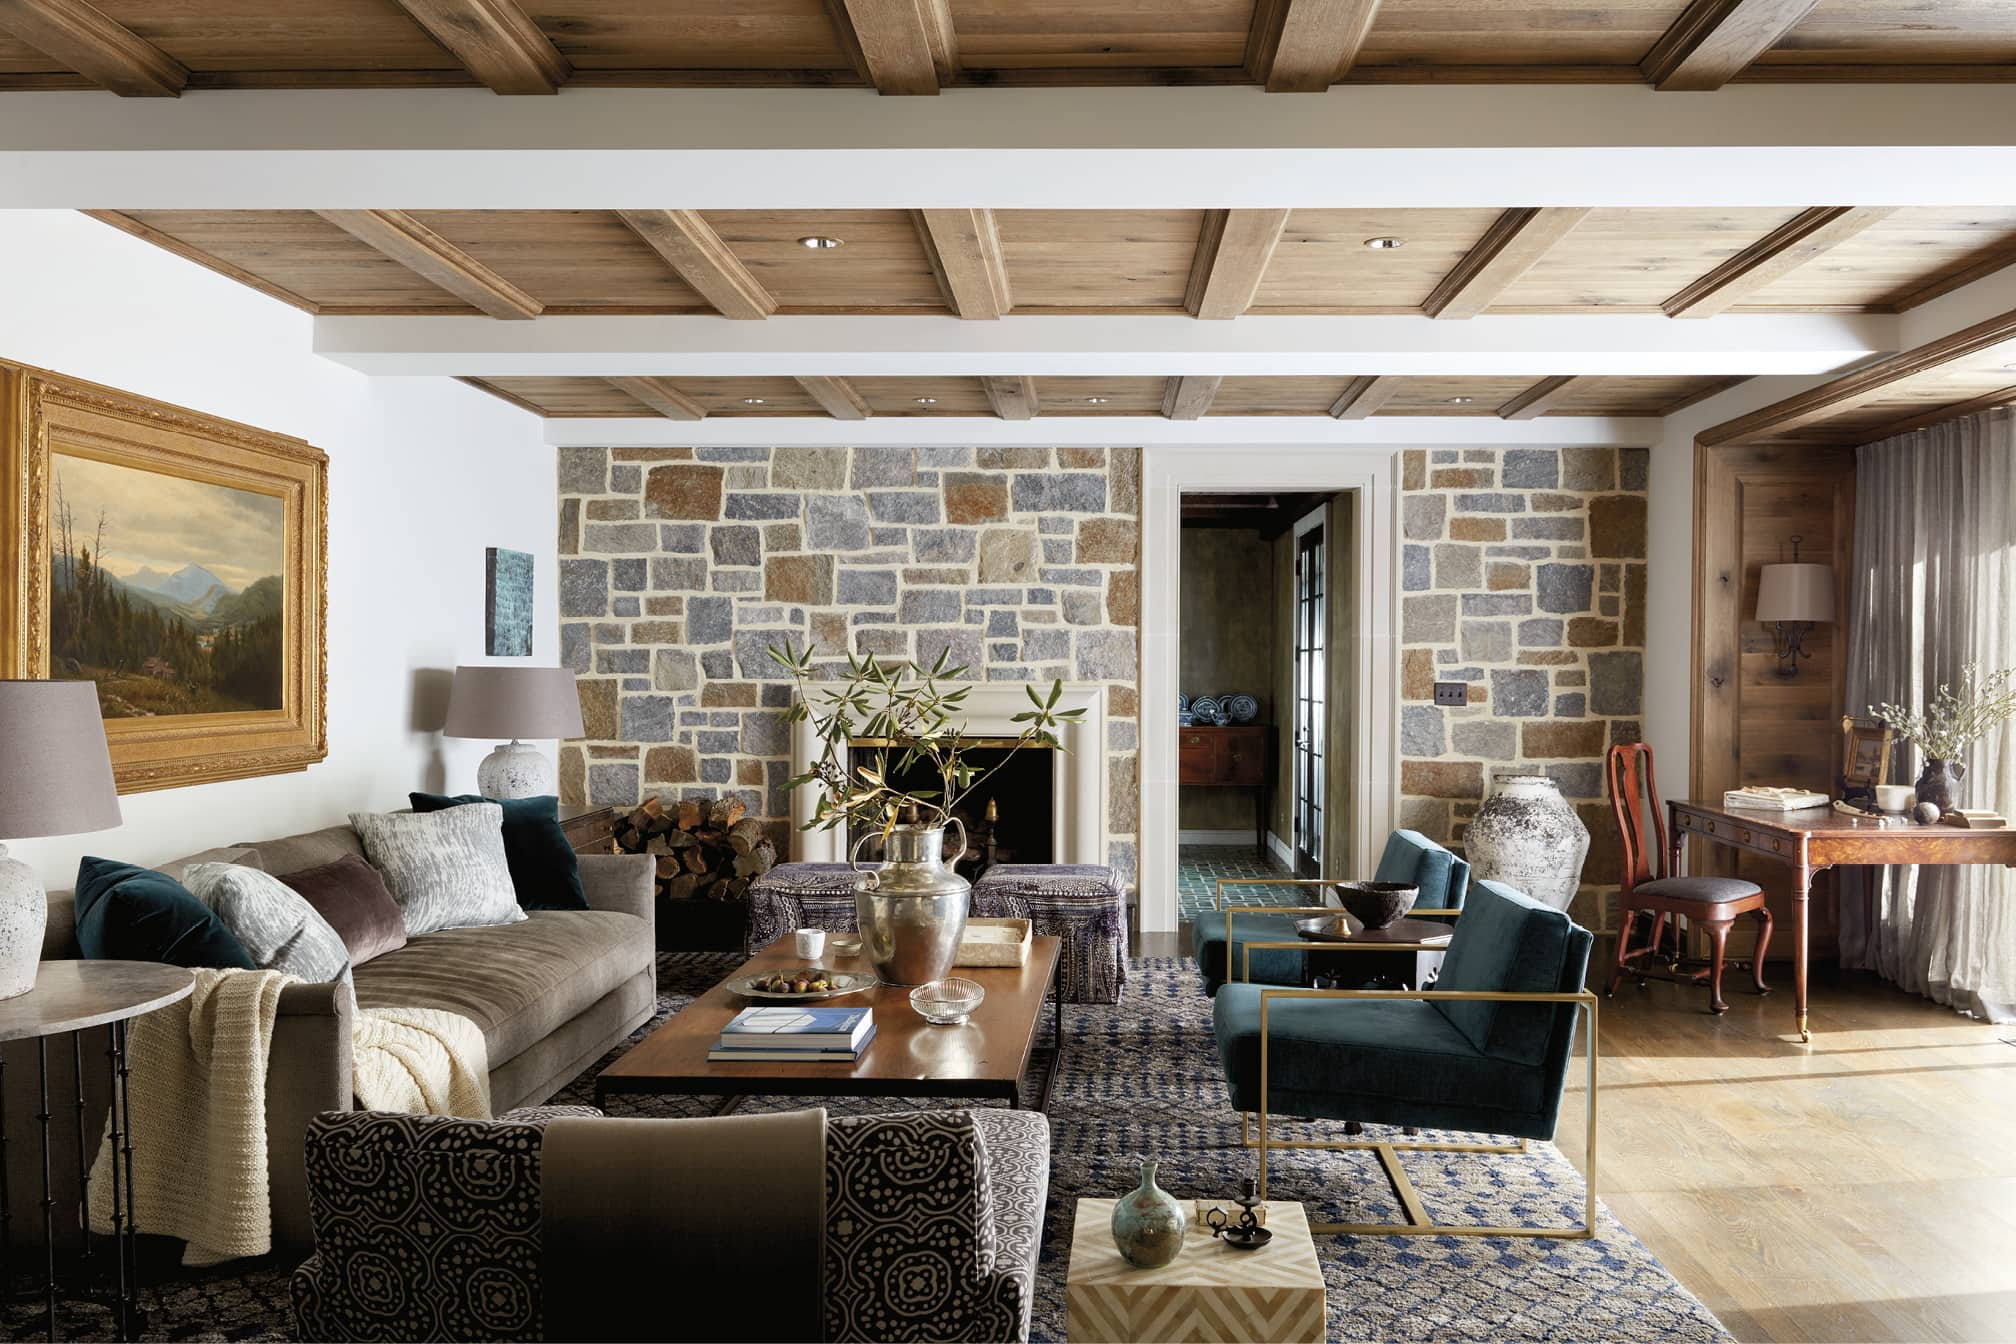 Sitting area with a stone wall